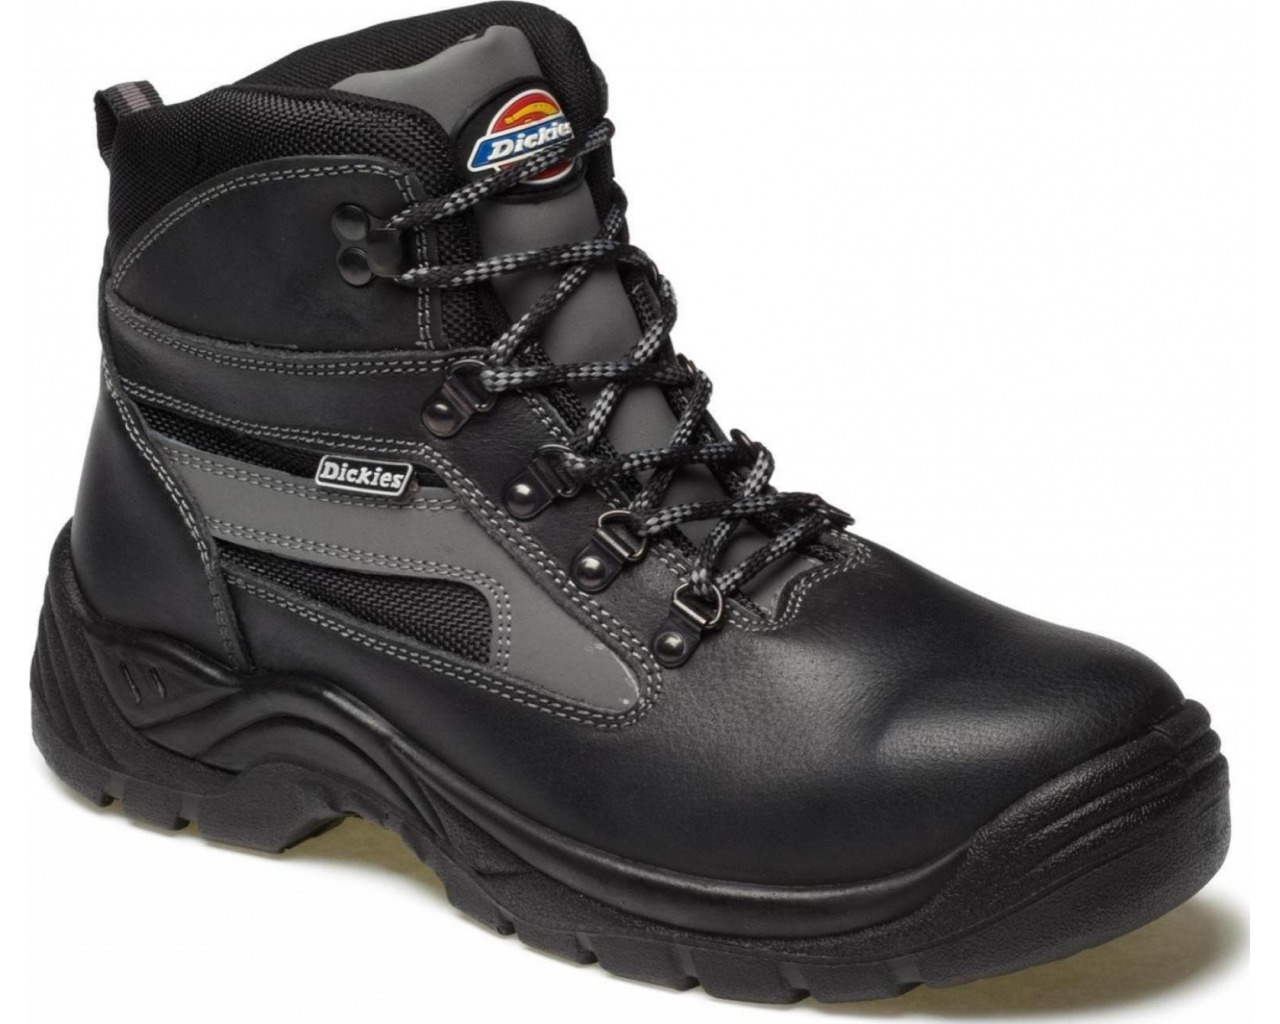 safety boots dickies severn safety boot (sizes 4-14) ULVCGUP